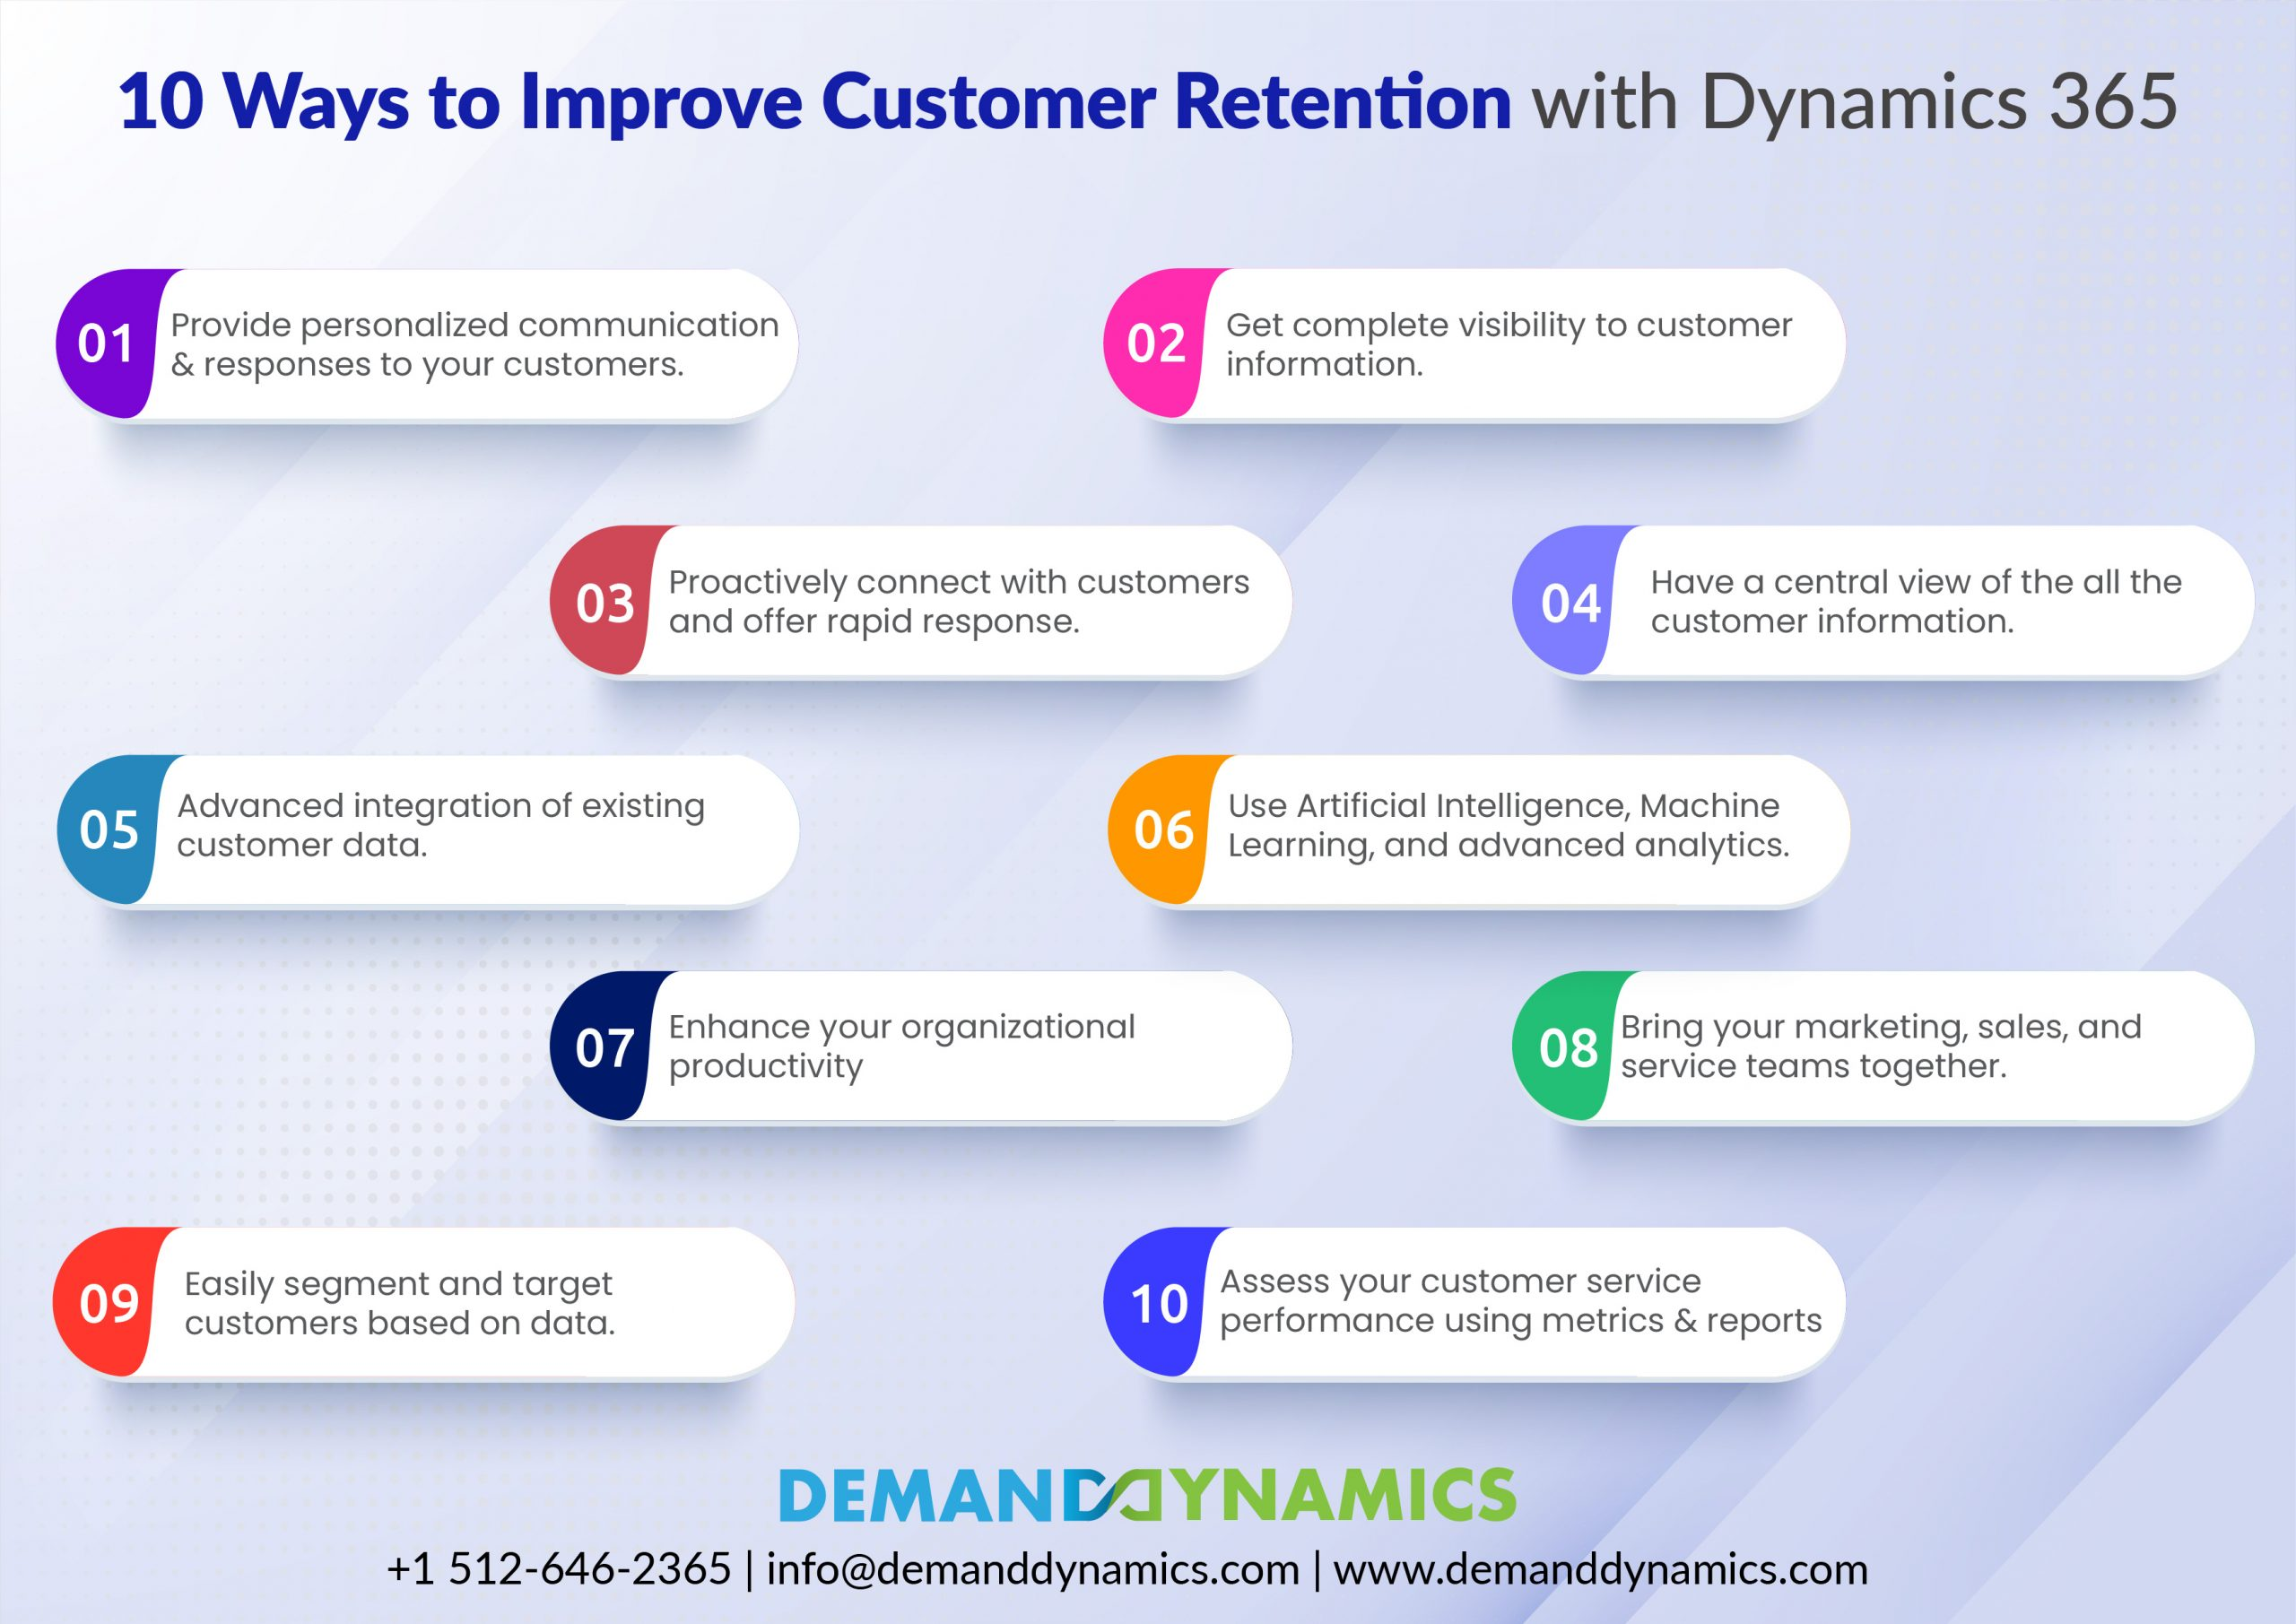 Improve Customer Retention with Dynamics 365